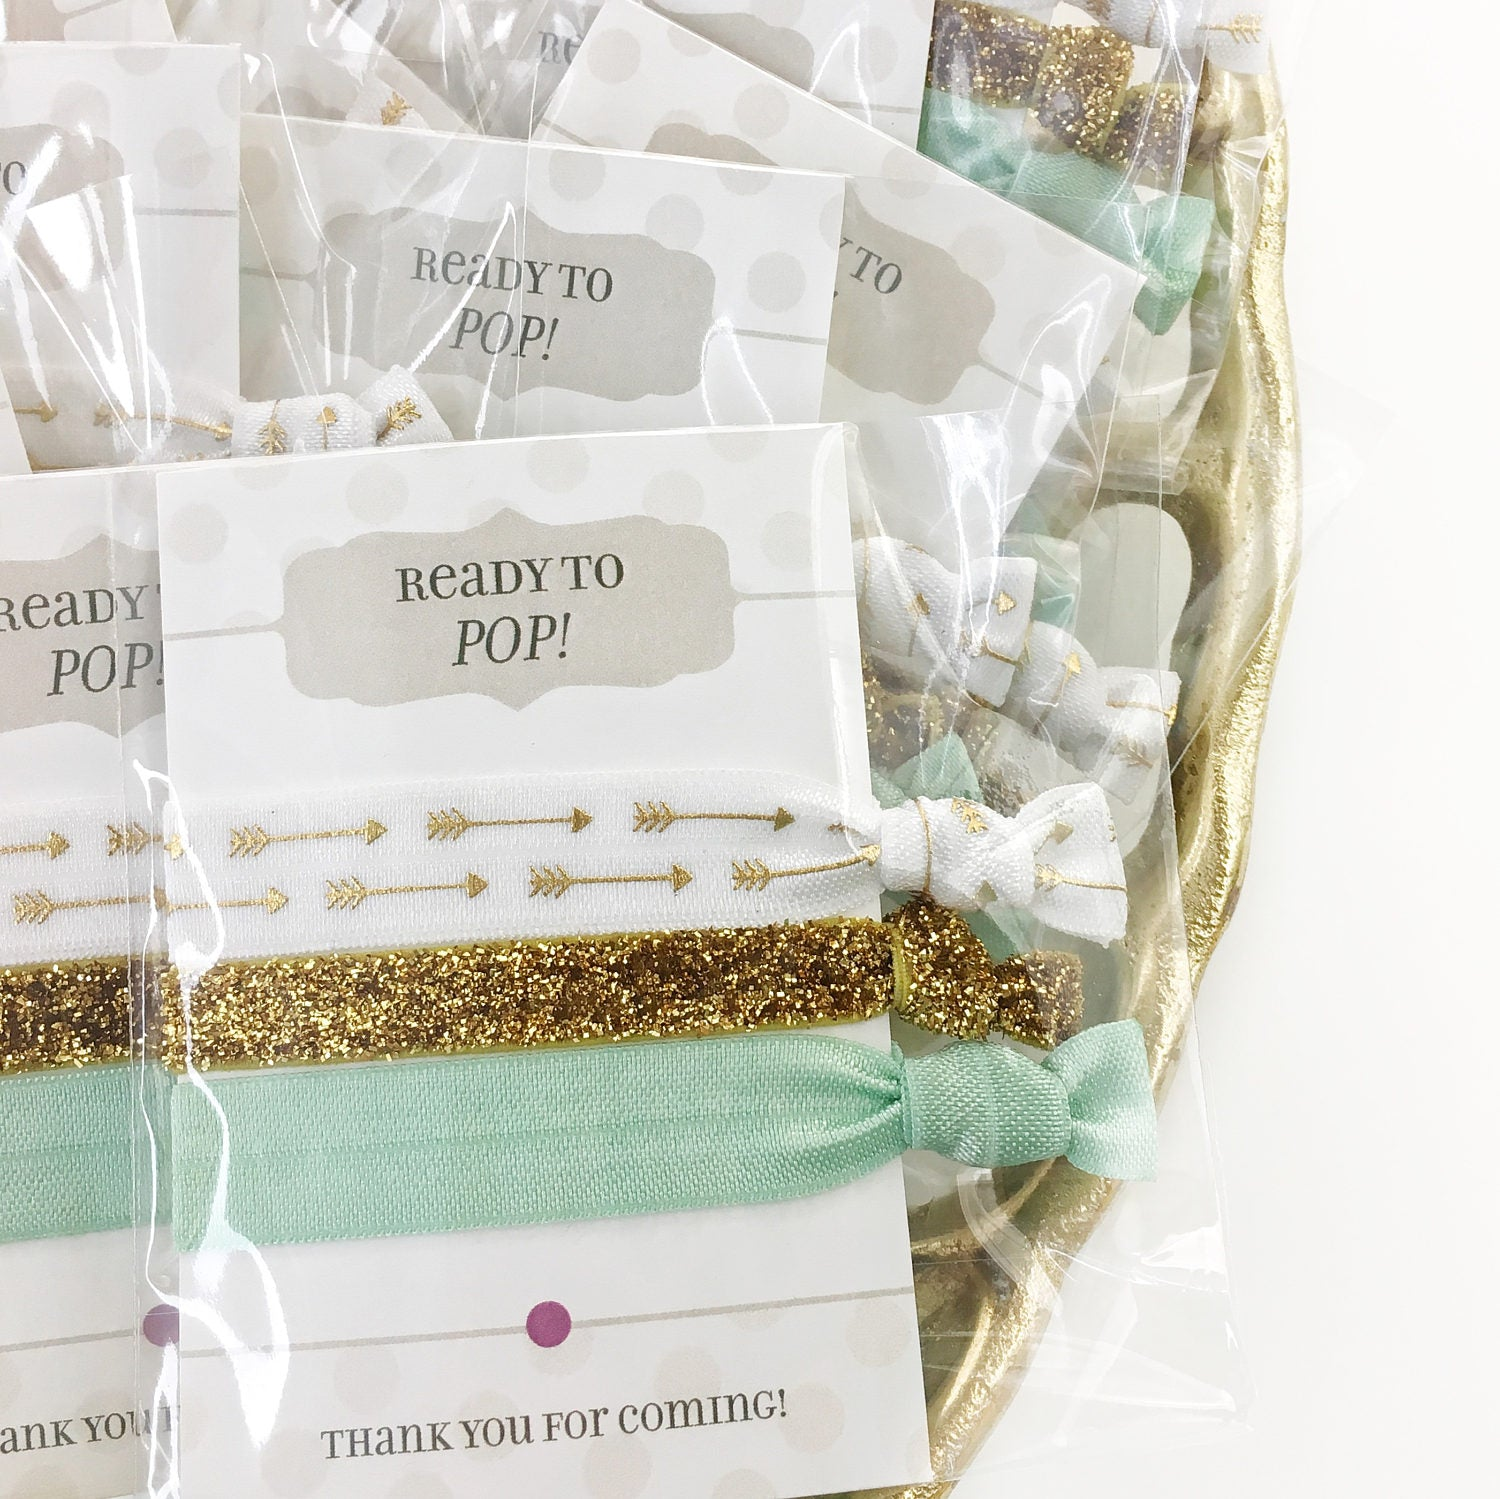 Ready to Pop Baby Shower Favors - Gender Neutral Mint and Gold Favors - @PlumPolkaDot